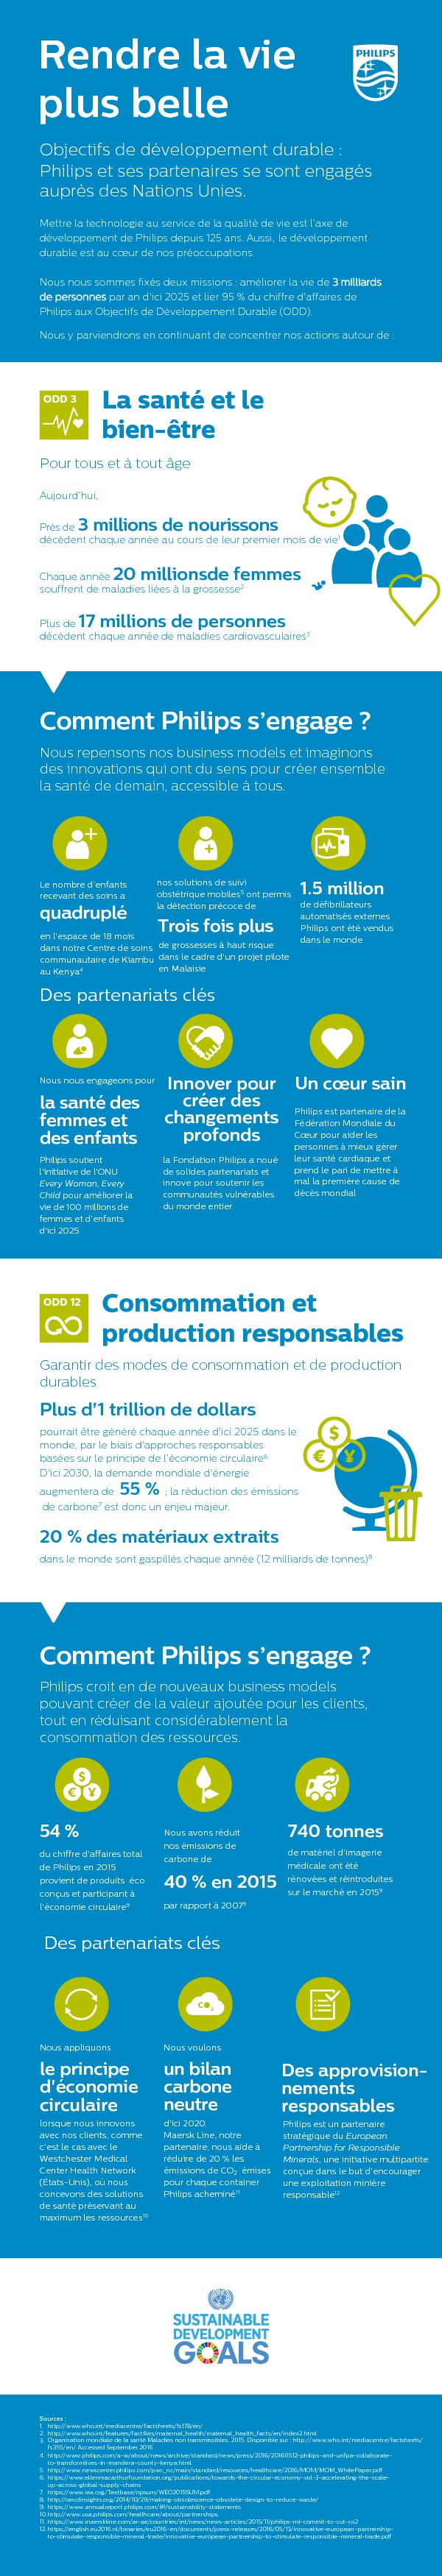 http://www.philips.fr/c-dam/corporate/about-philips/sustainability/infographics/Philips_SDG_Infographic_2016_FINAL_FR.pdf